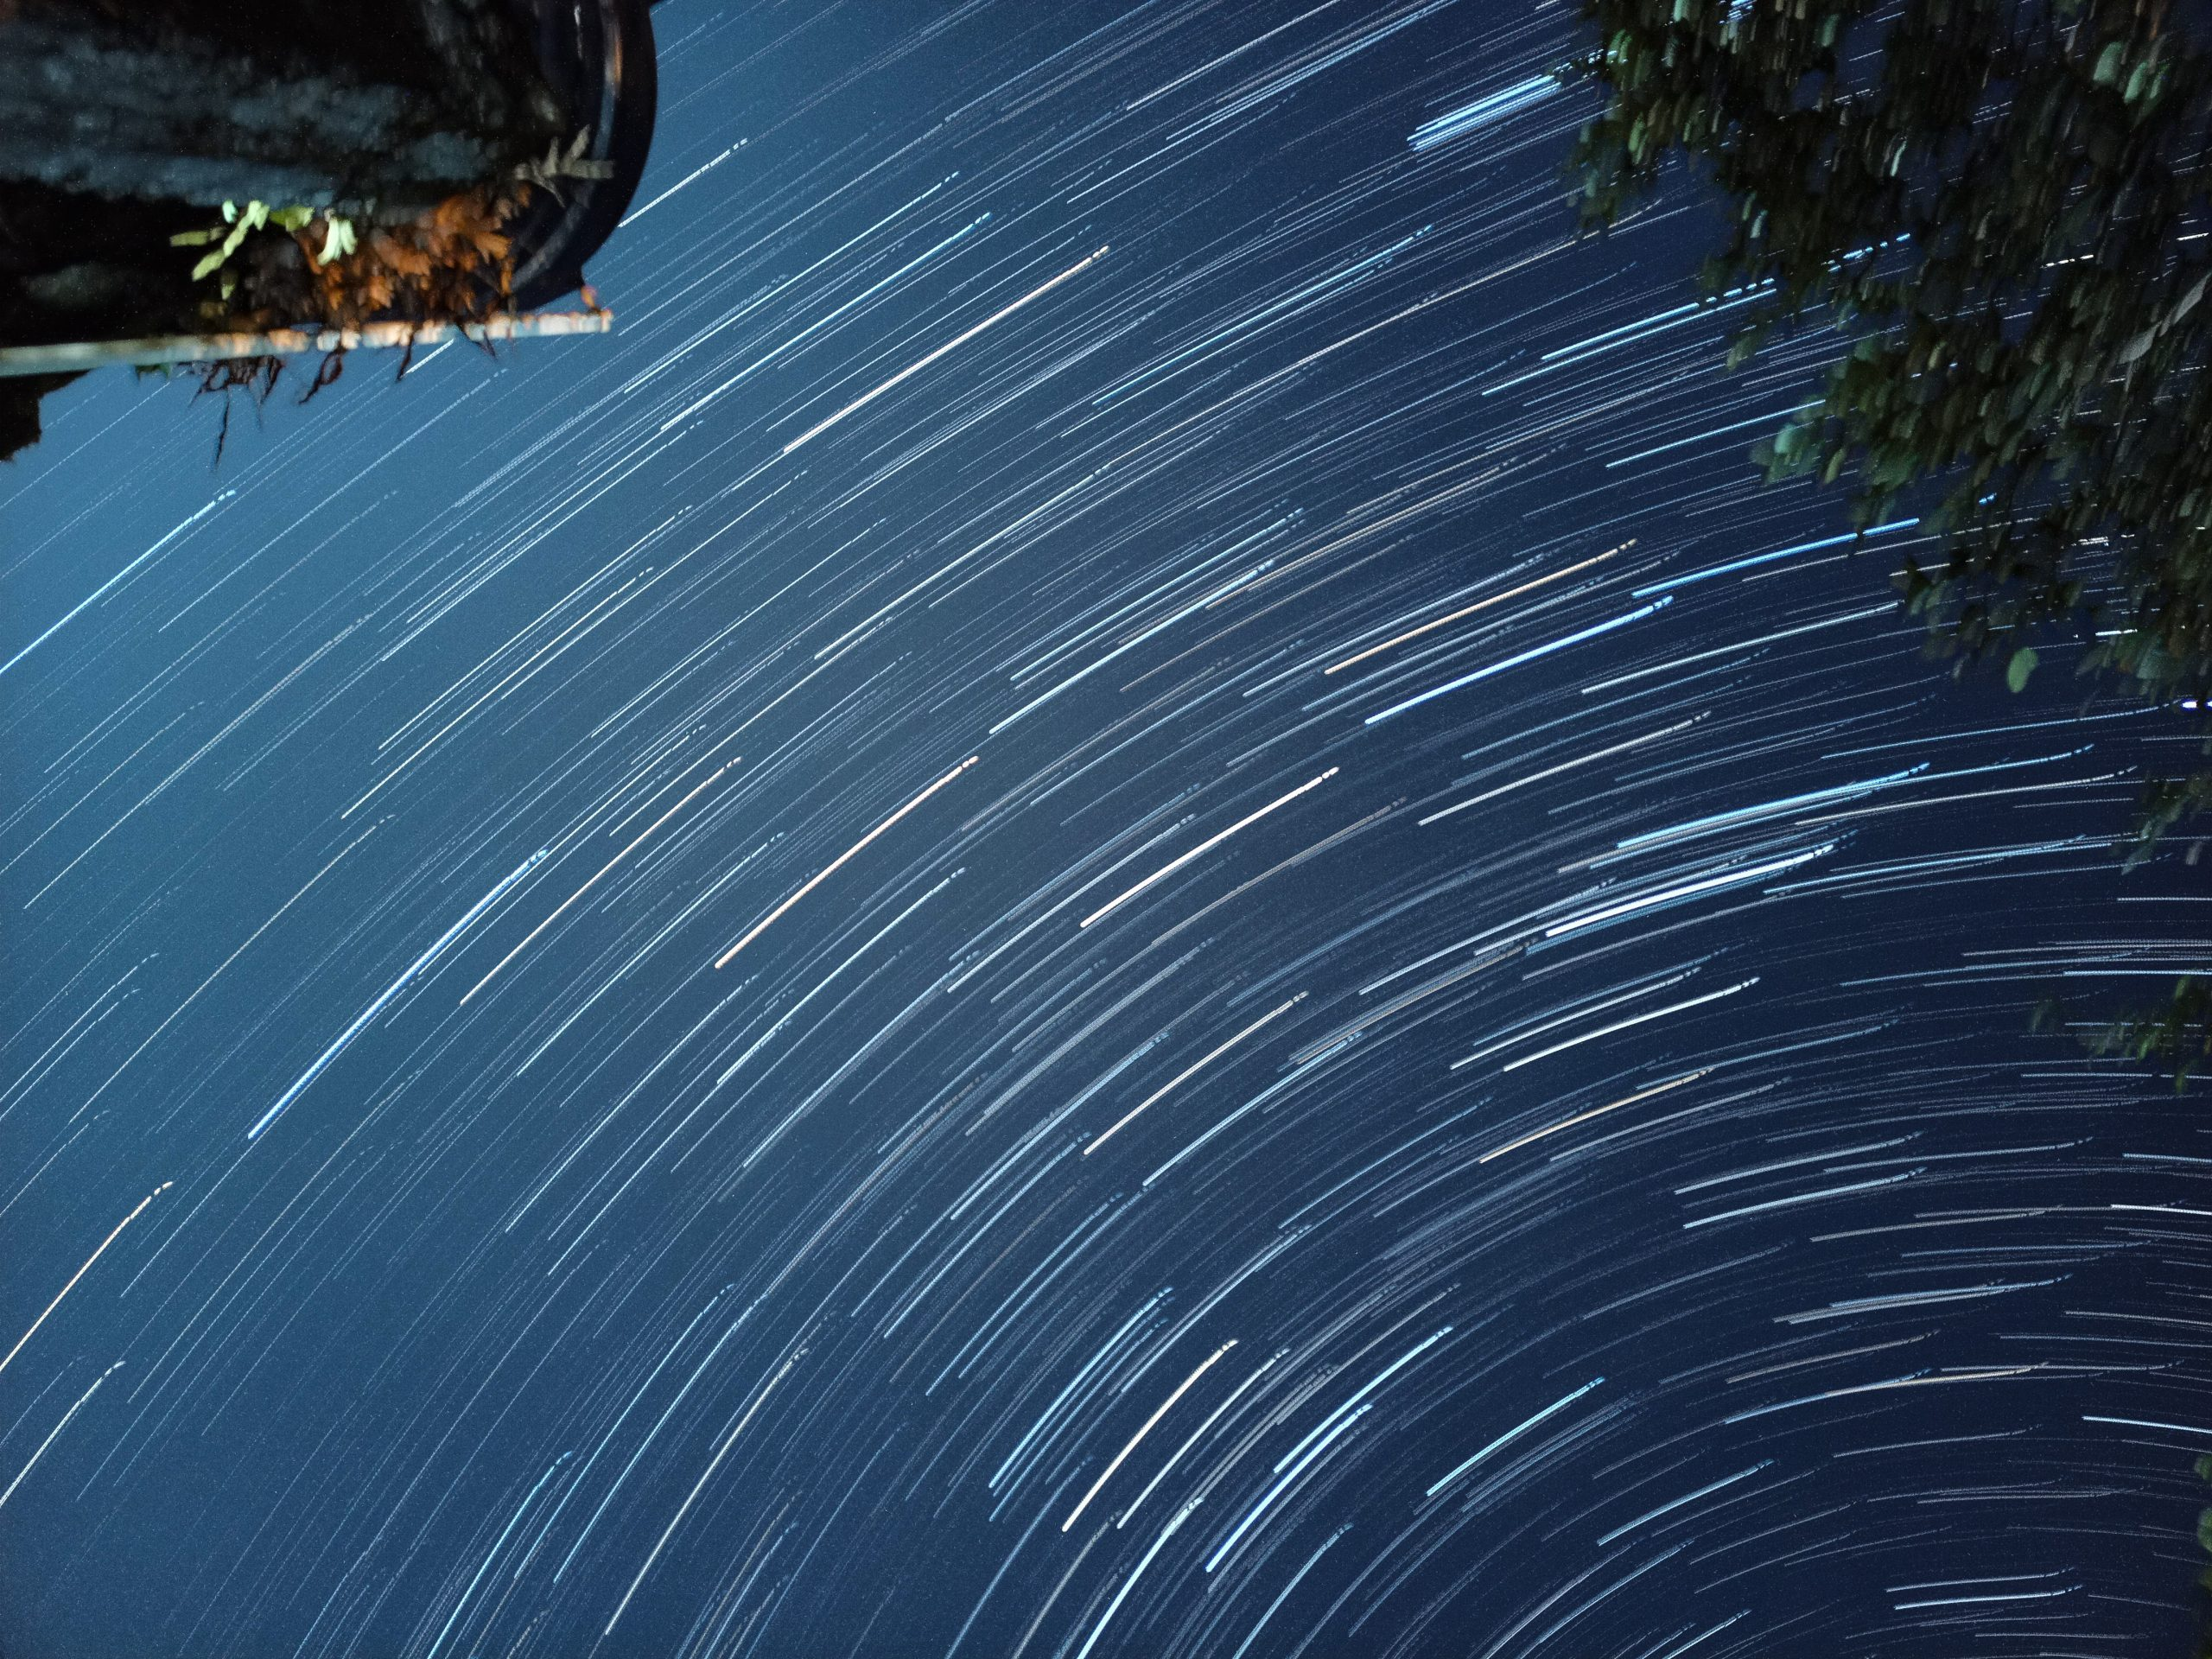 Star light trails